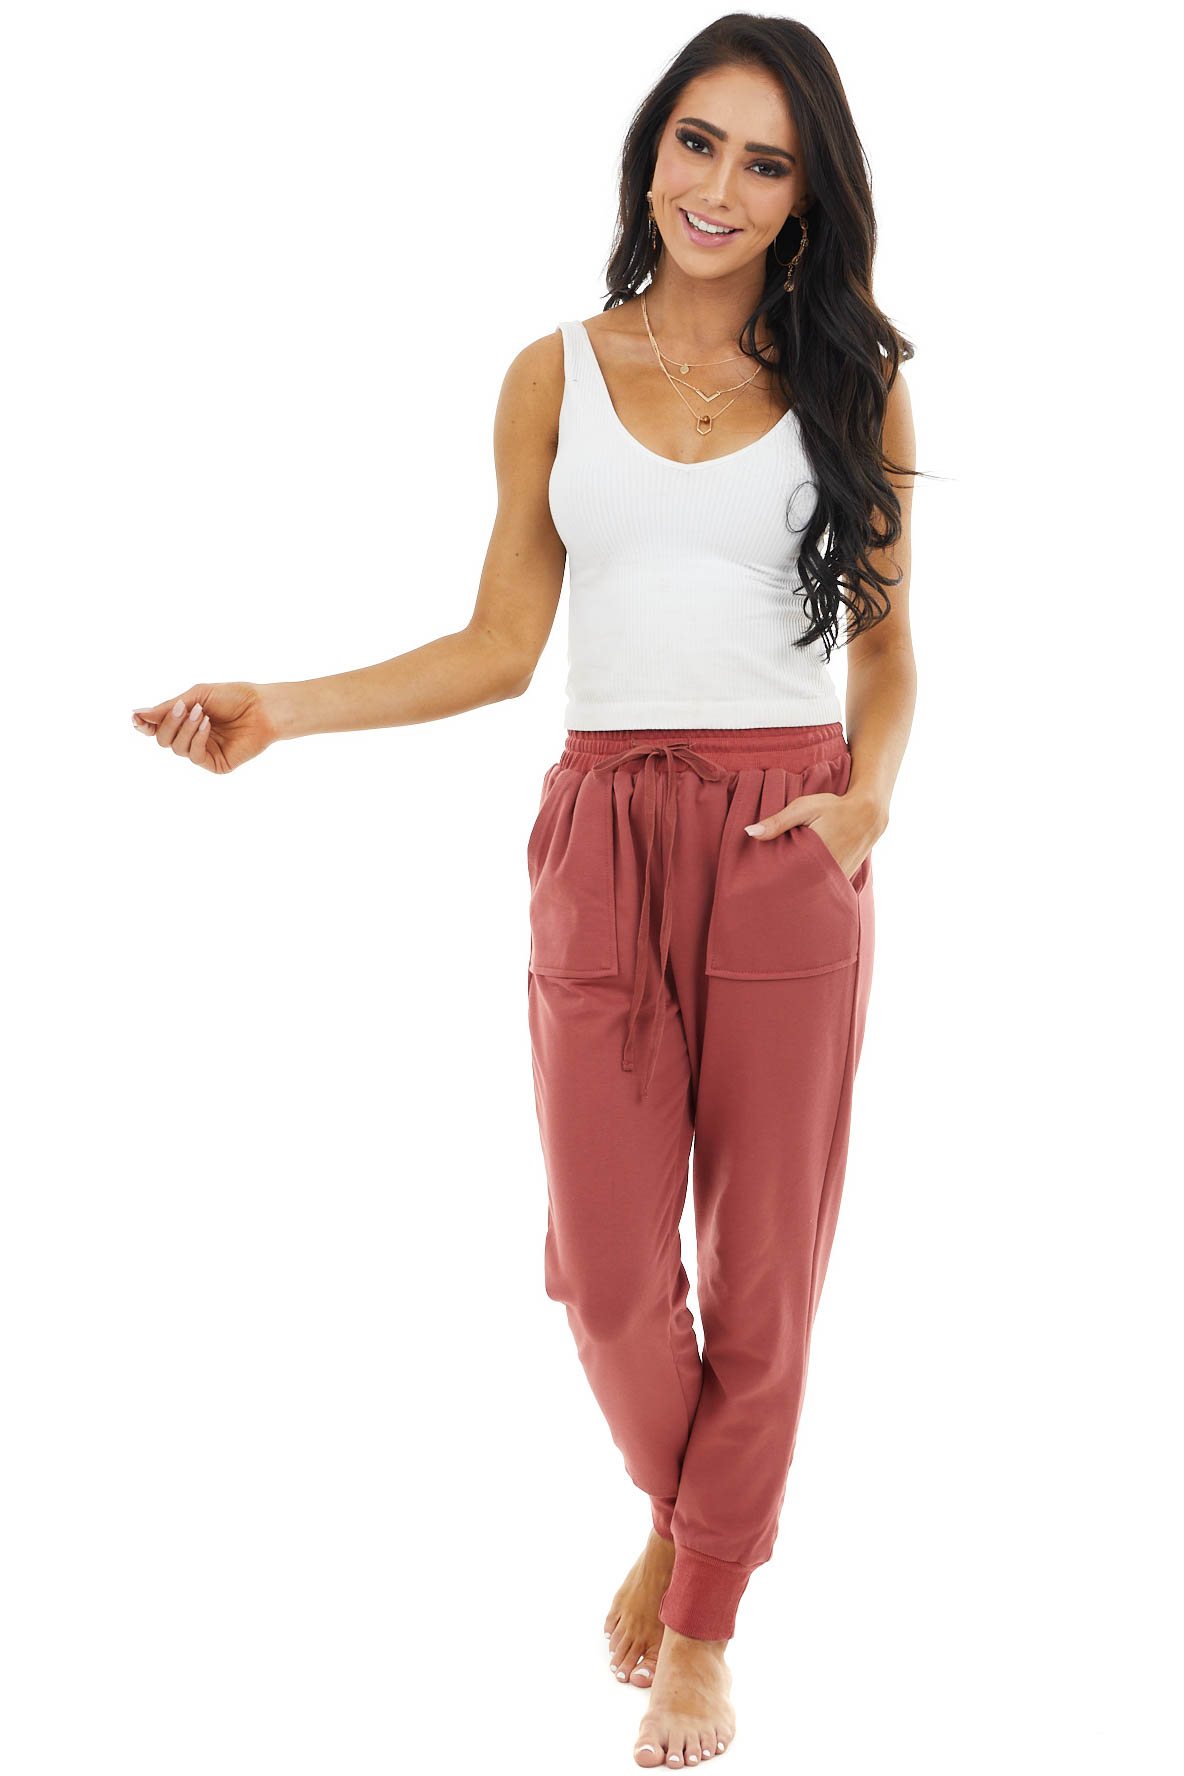 Brick Solid Stretchy Knit Jogger Pants With Pockets